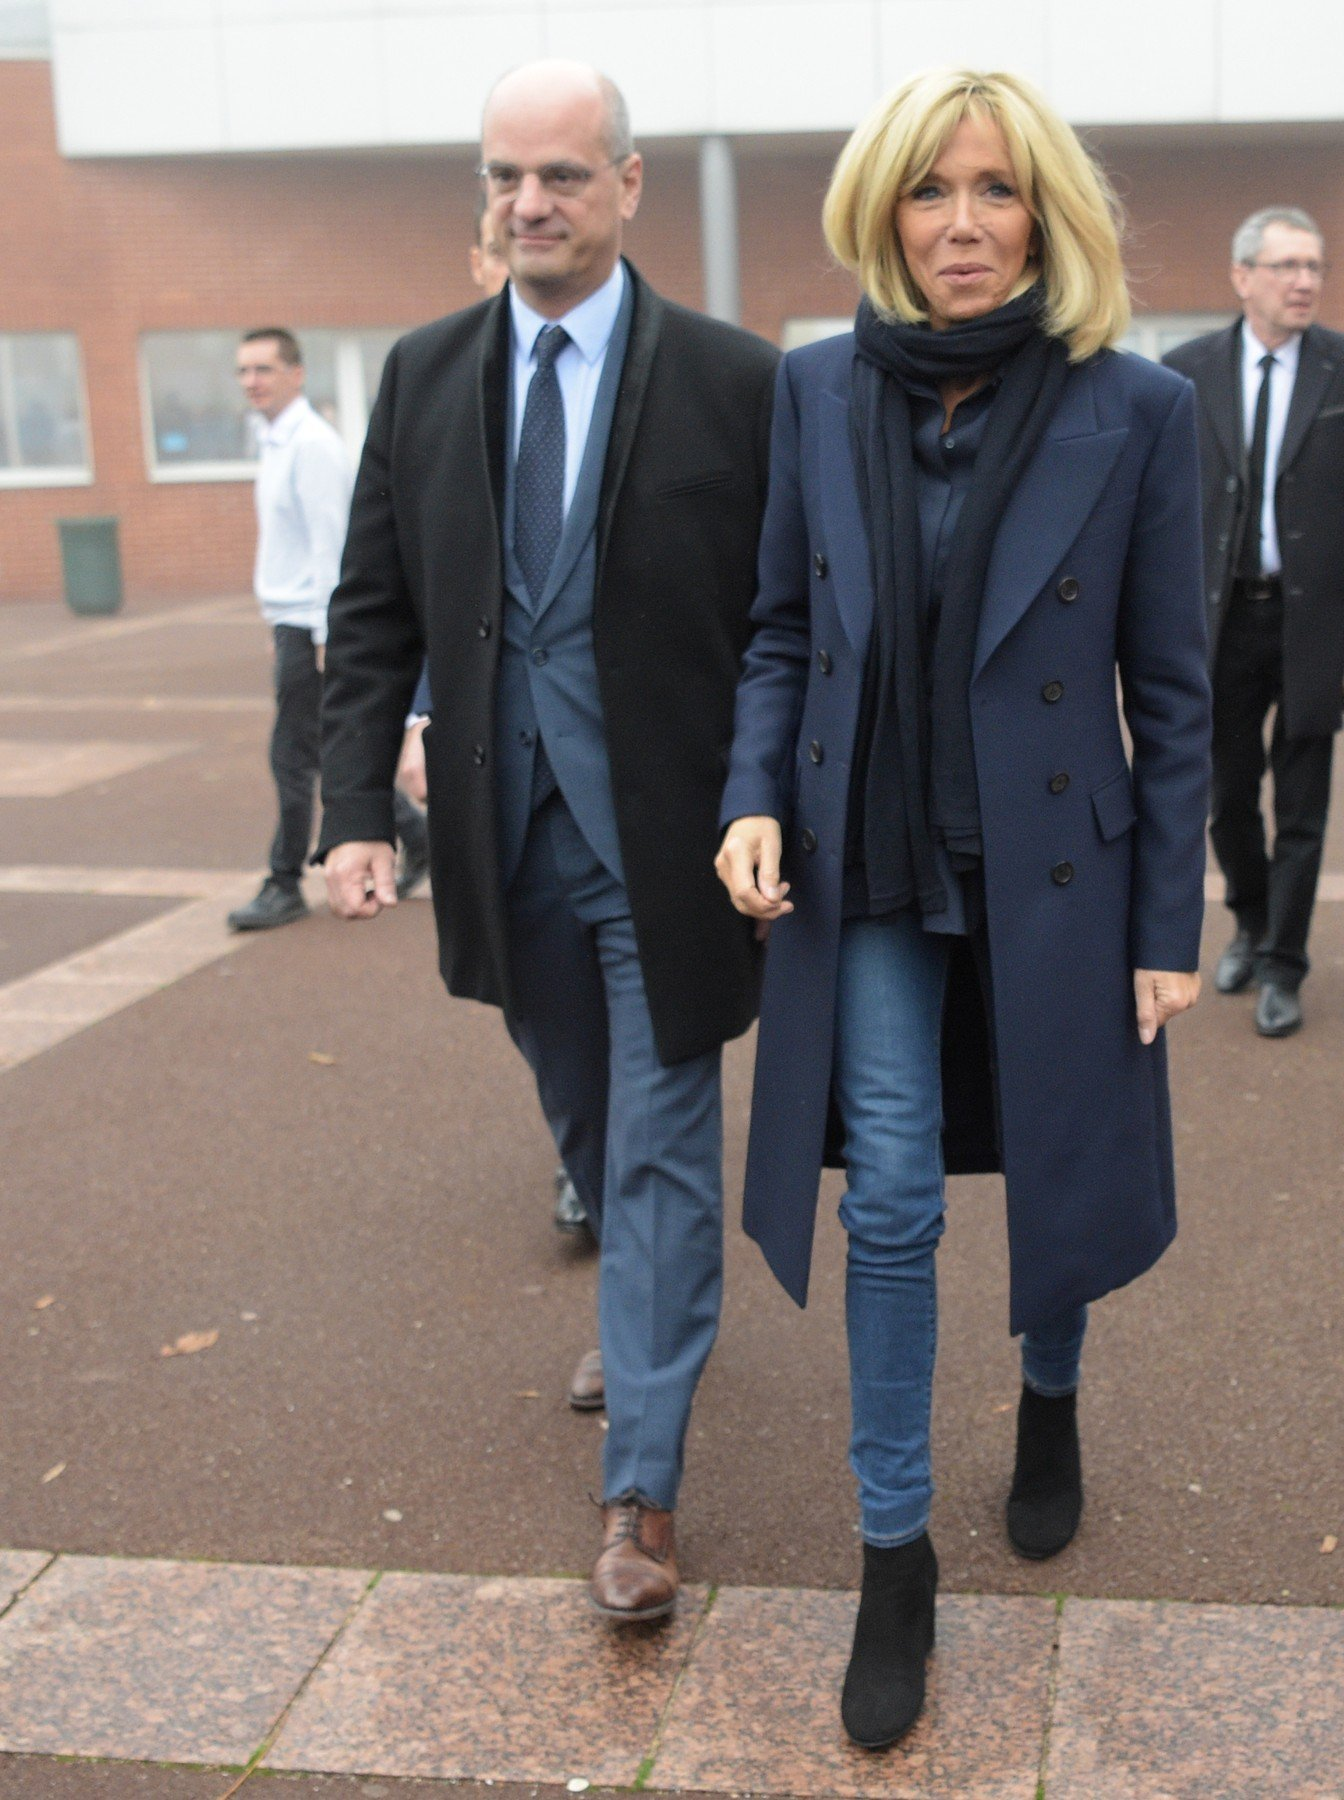 French Education Minister Jean-Michel Blanquer, French President's wife Brigitte Macron and French Junior Minister for Gender Equality Marlene Schiappa during a visit to raise awareness about bullying in a high school of Clamart, near Paris, France on November 15, 2018., Image: 396311080, License: Rights-managed, Restrictions: , Model Release: no, Credit line: Profimedia, Abaca